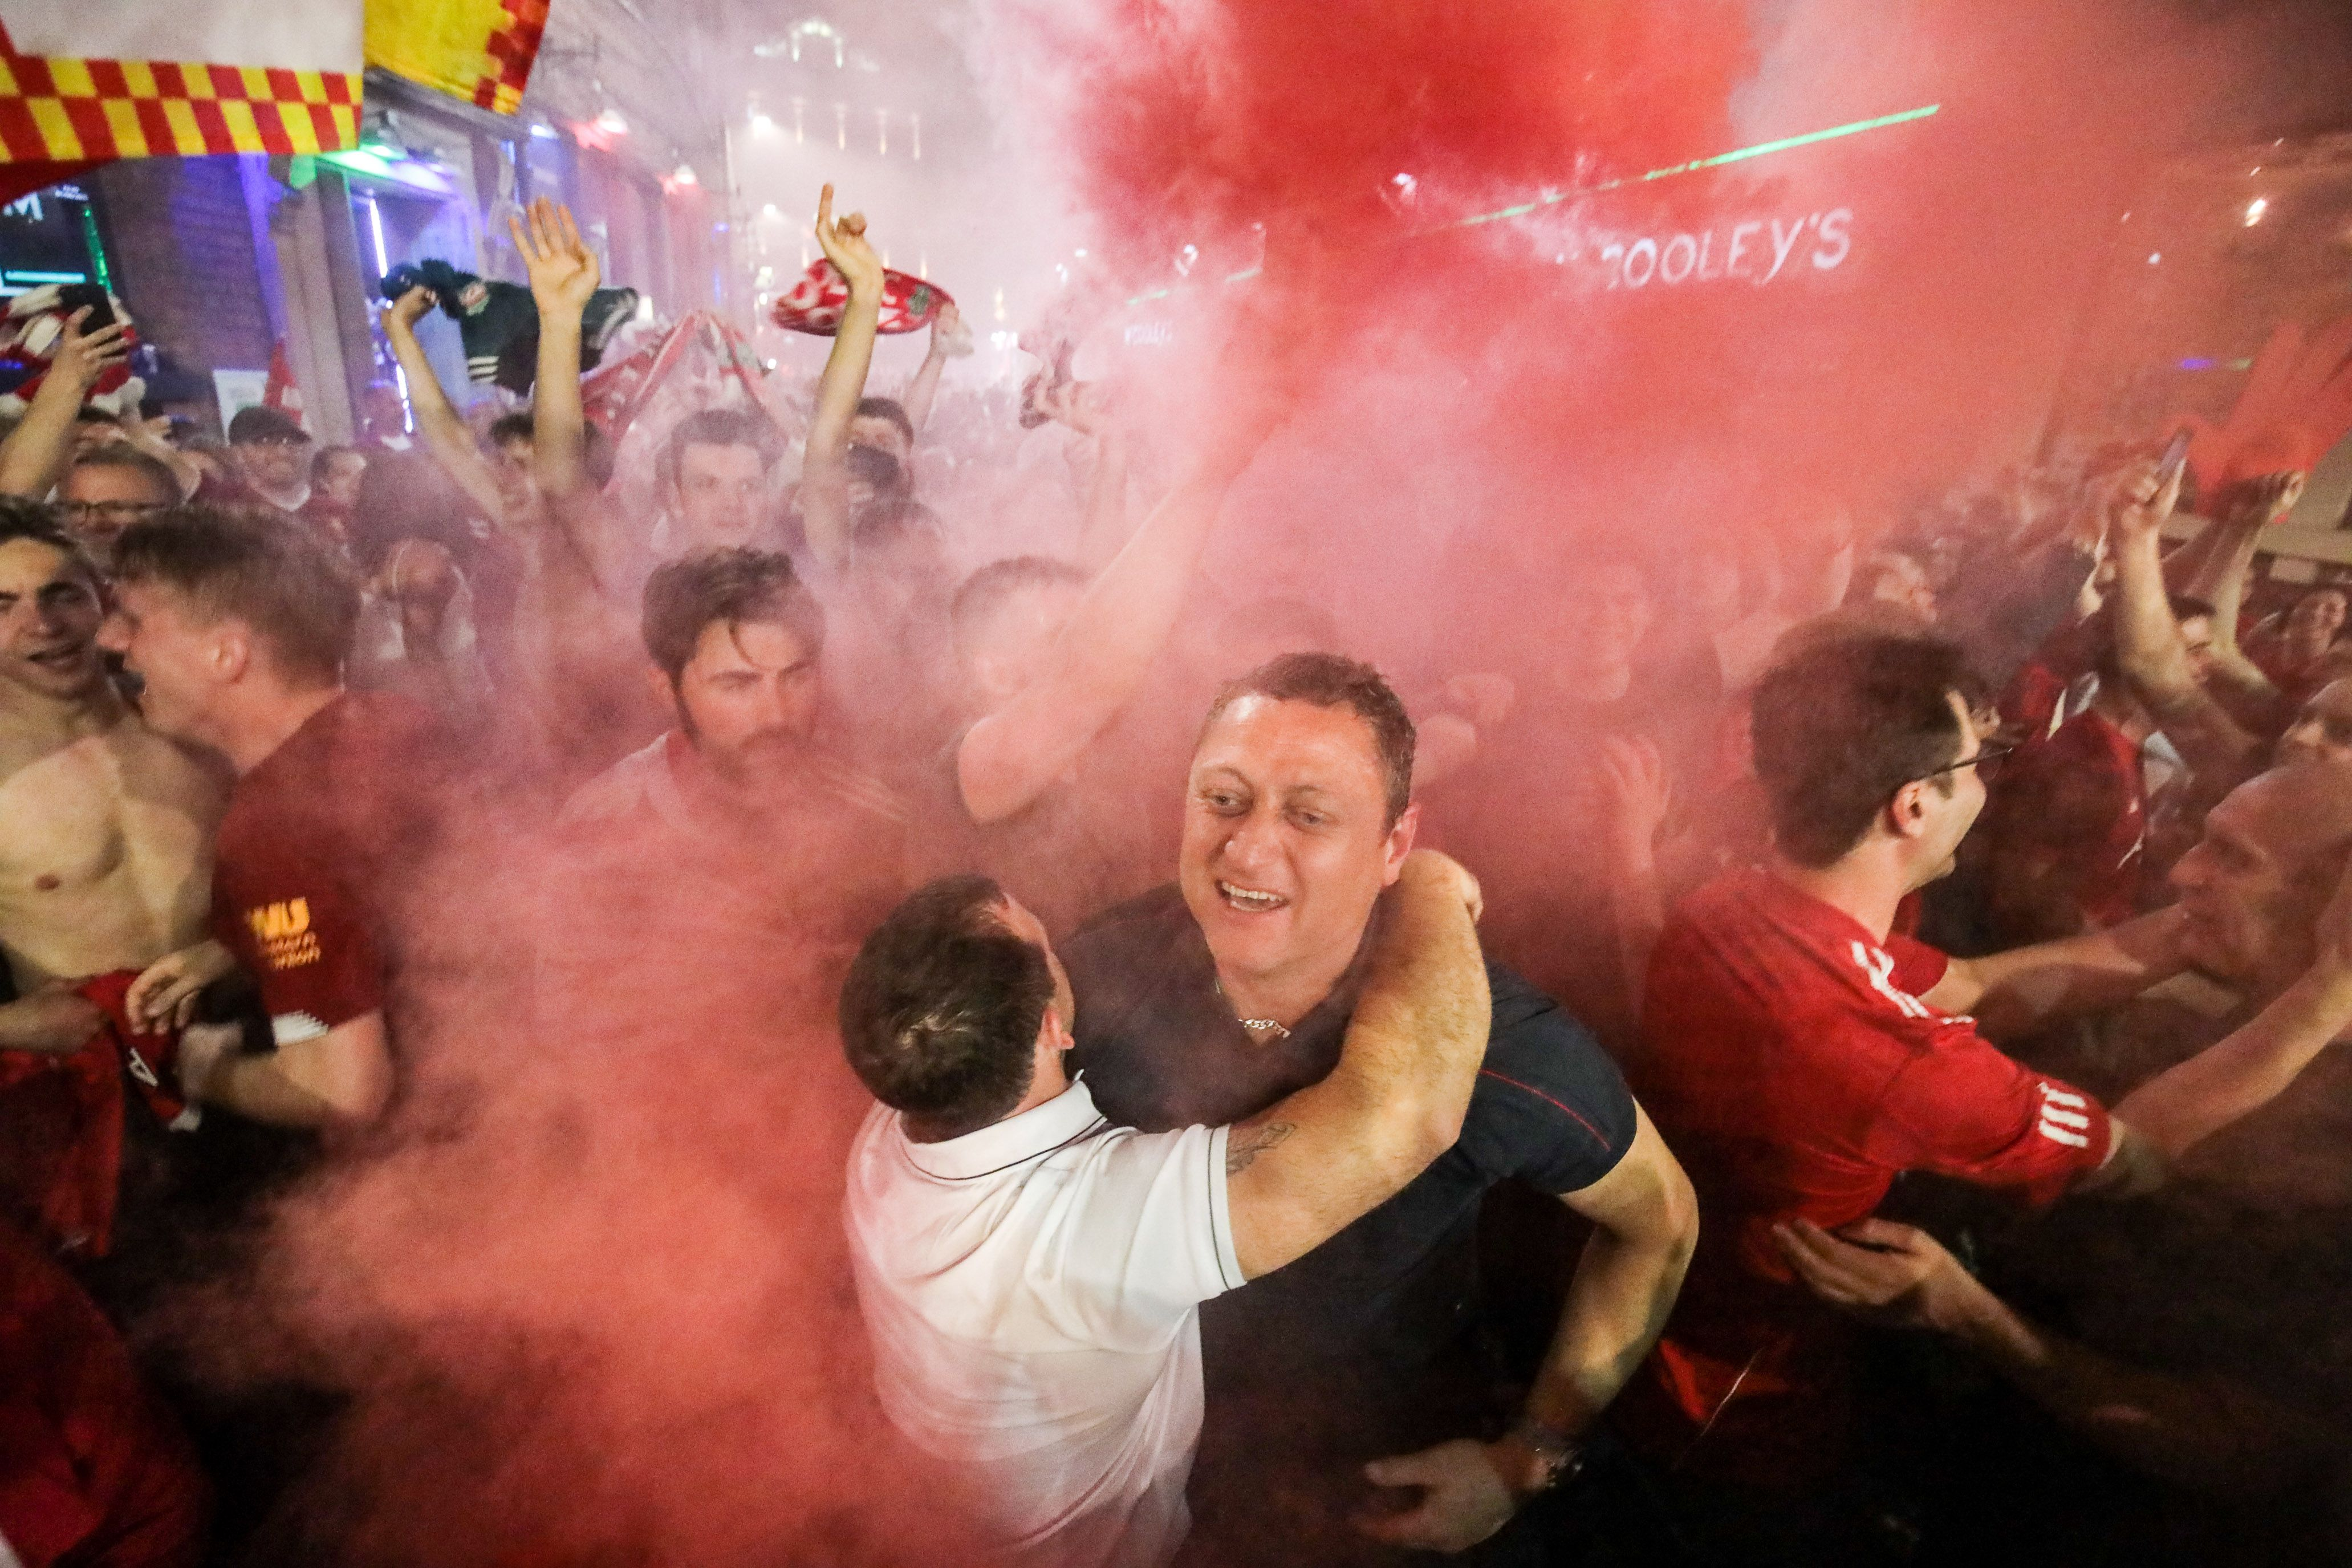 Liverpool Fans Celebrate All Night Following Champions